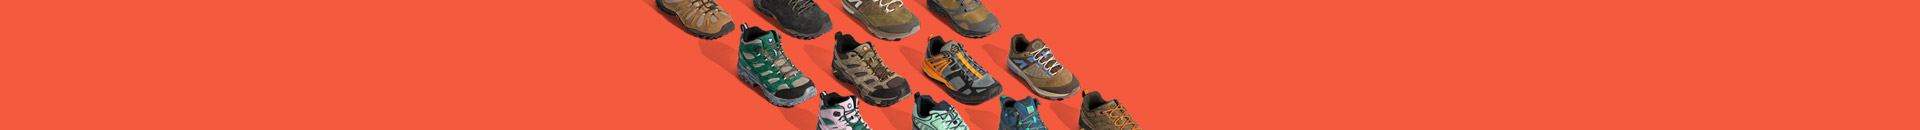 many hiking shoes on an orange background, animated to appear one after another